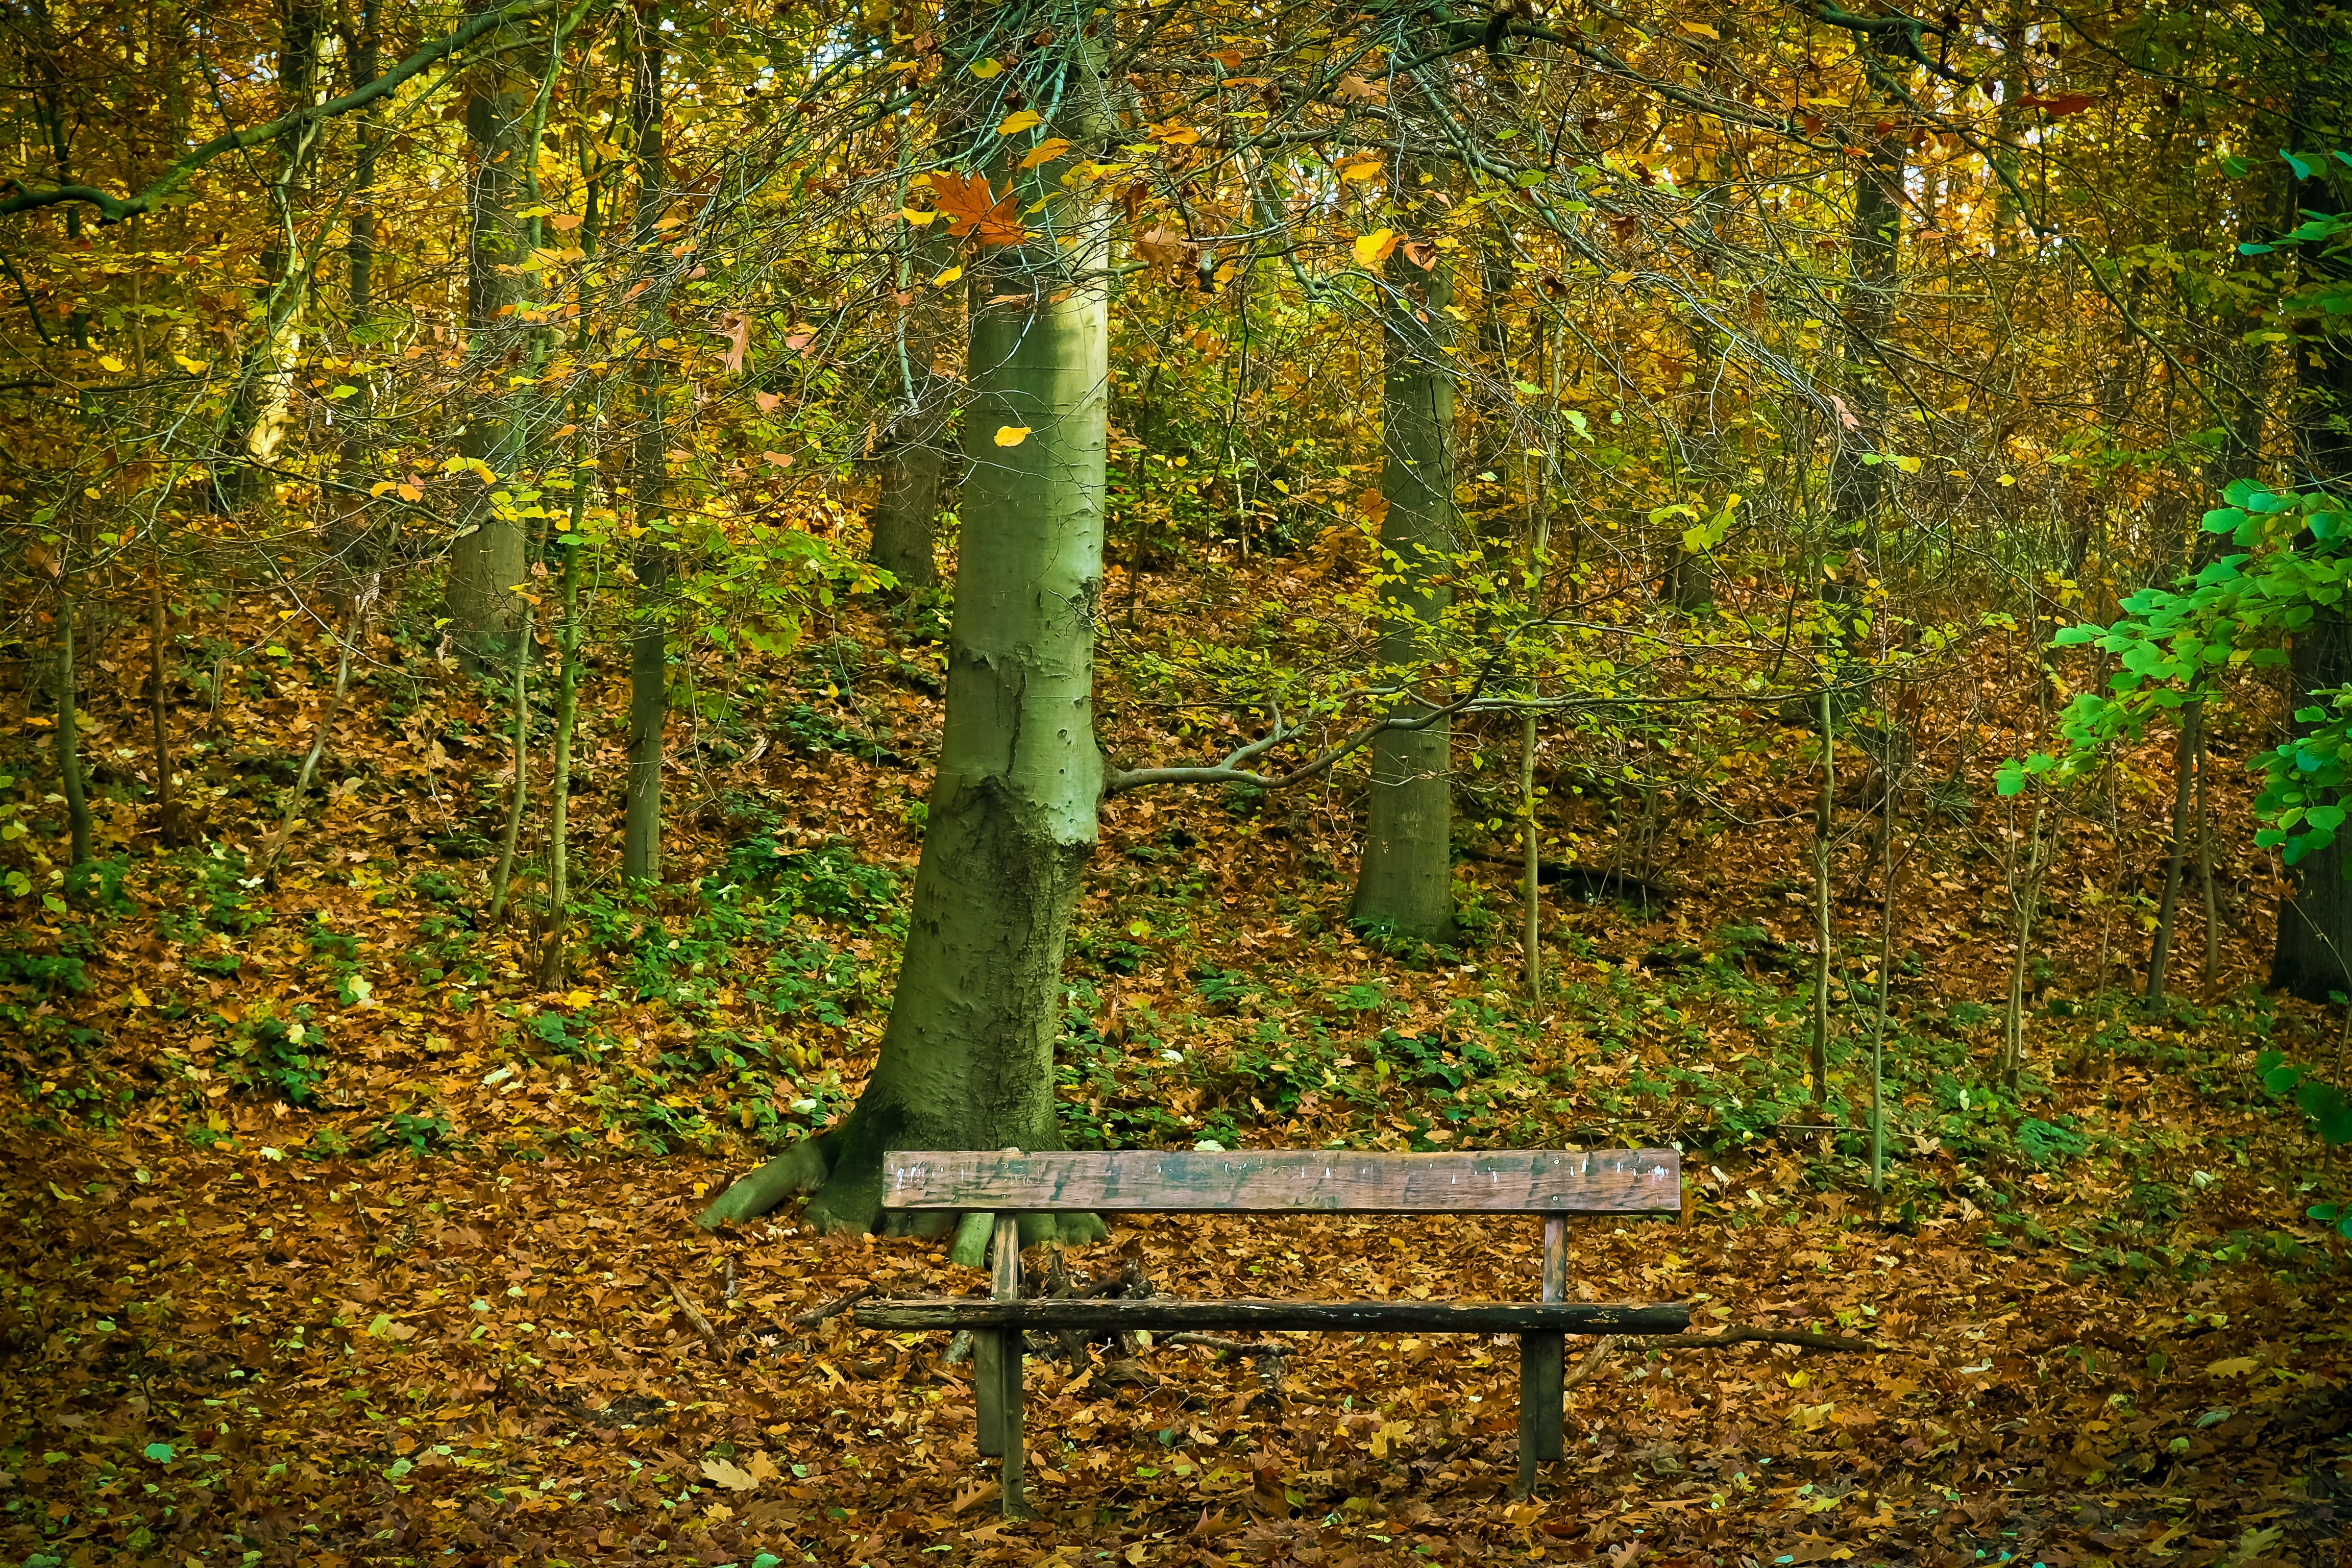 Bench in Park during Autumn, Autumn, Nature, Wooden bench, Trunks, HQ Photo